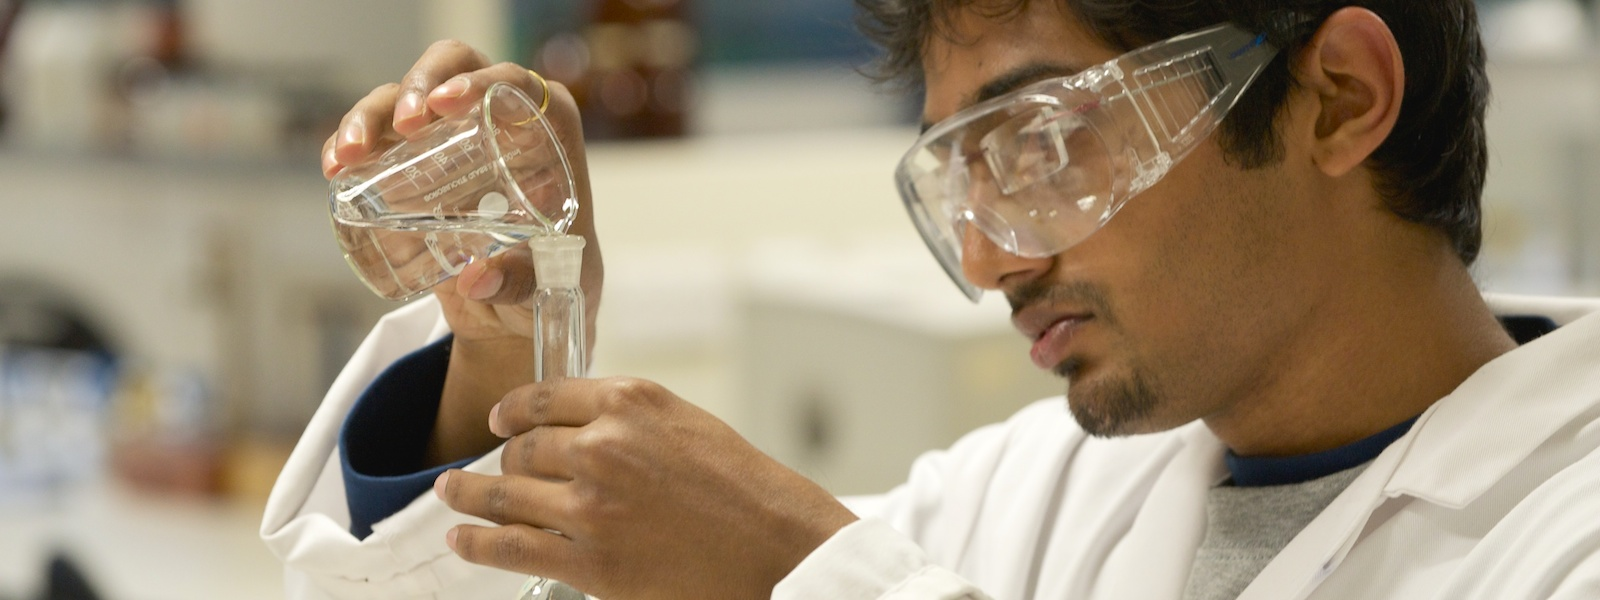 Student in a SIPBS laboratory